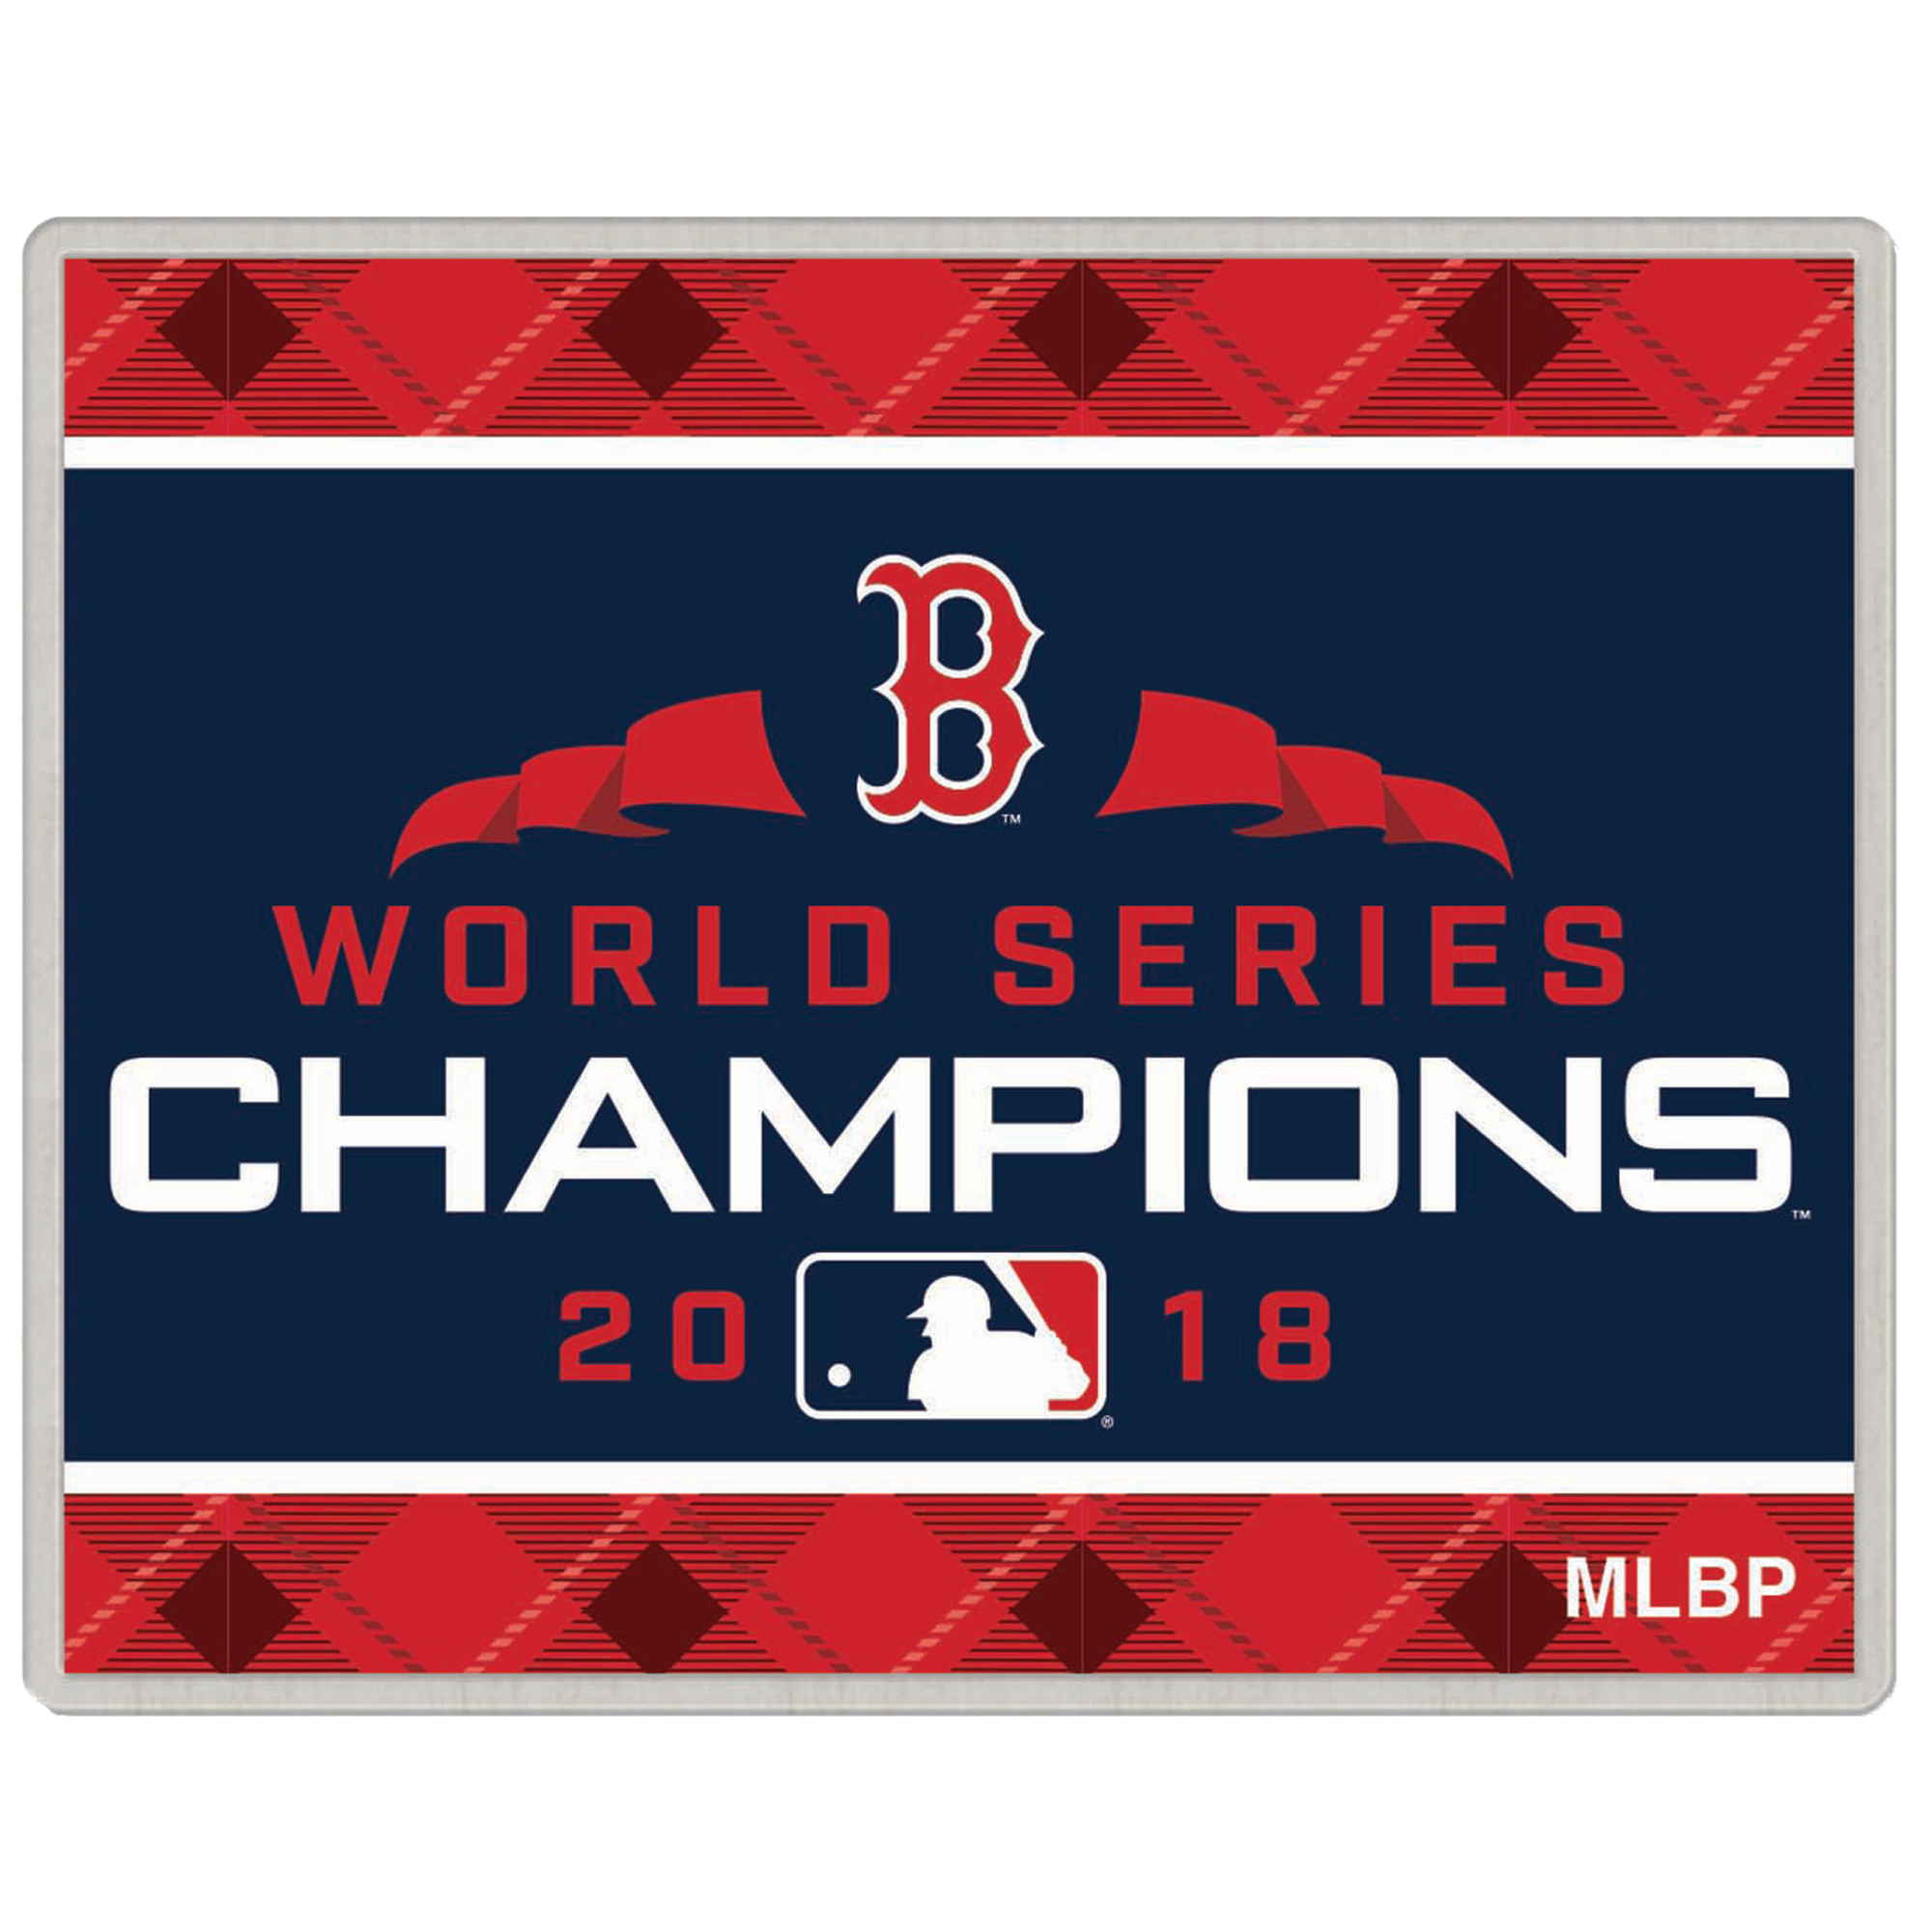 Boston Red Sox WinCraft 2018 World Series Champions Collector Pin - No Size